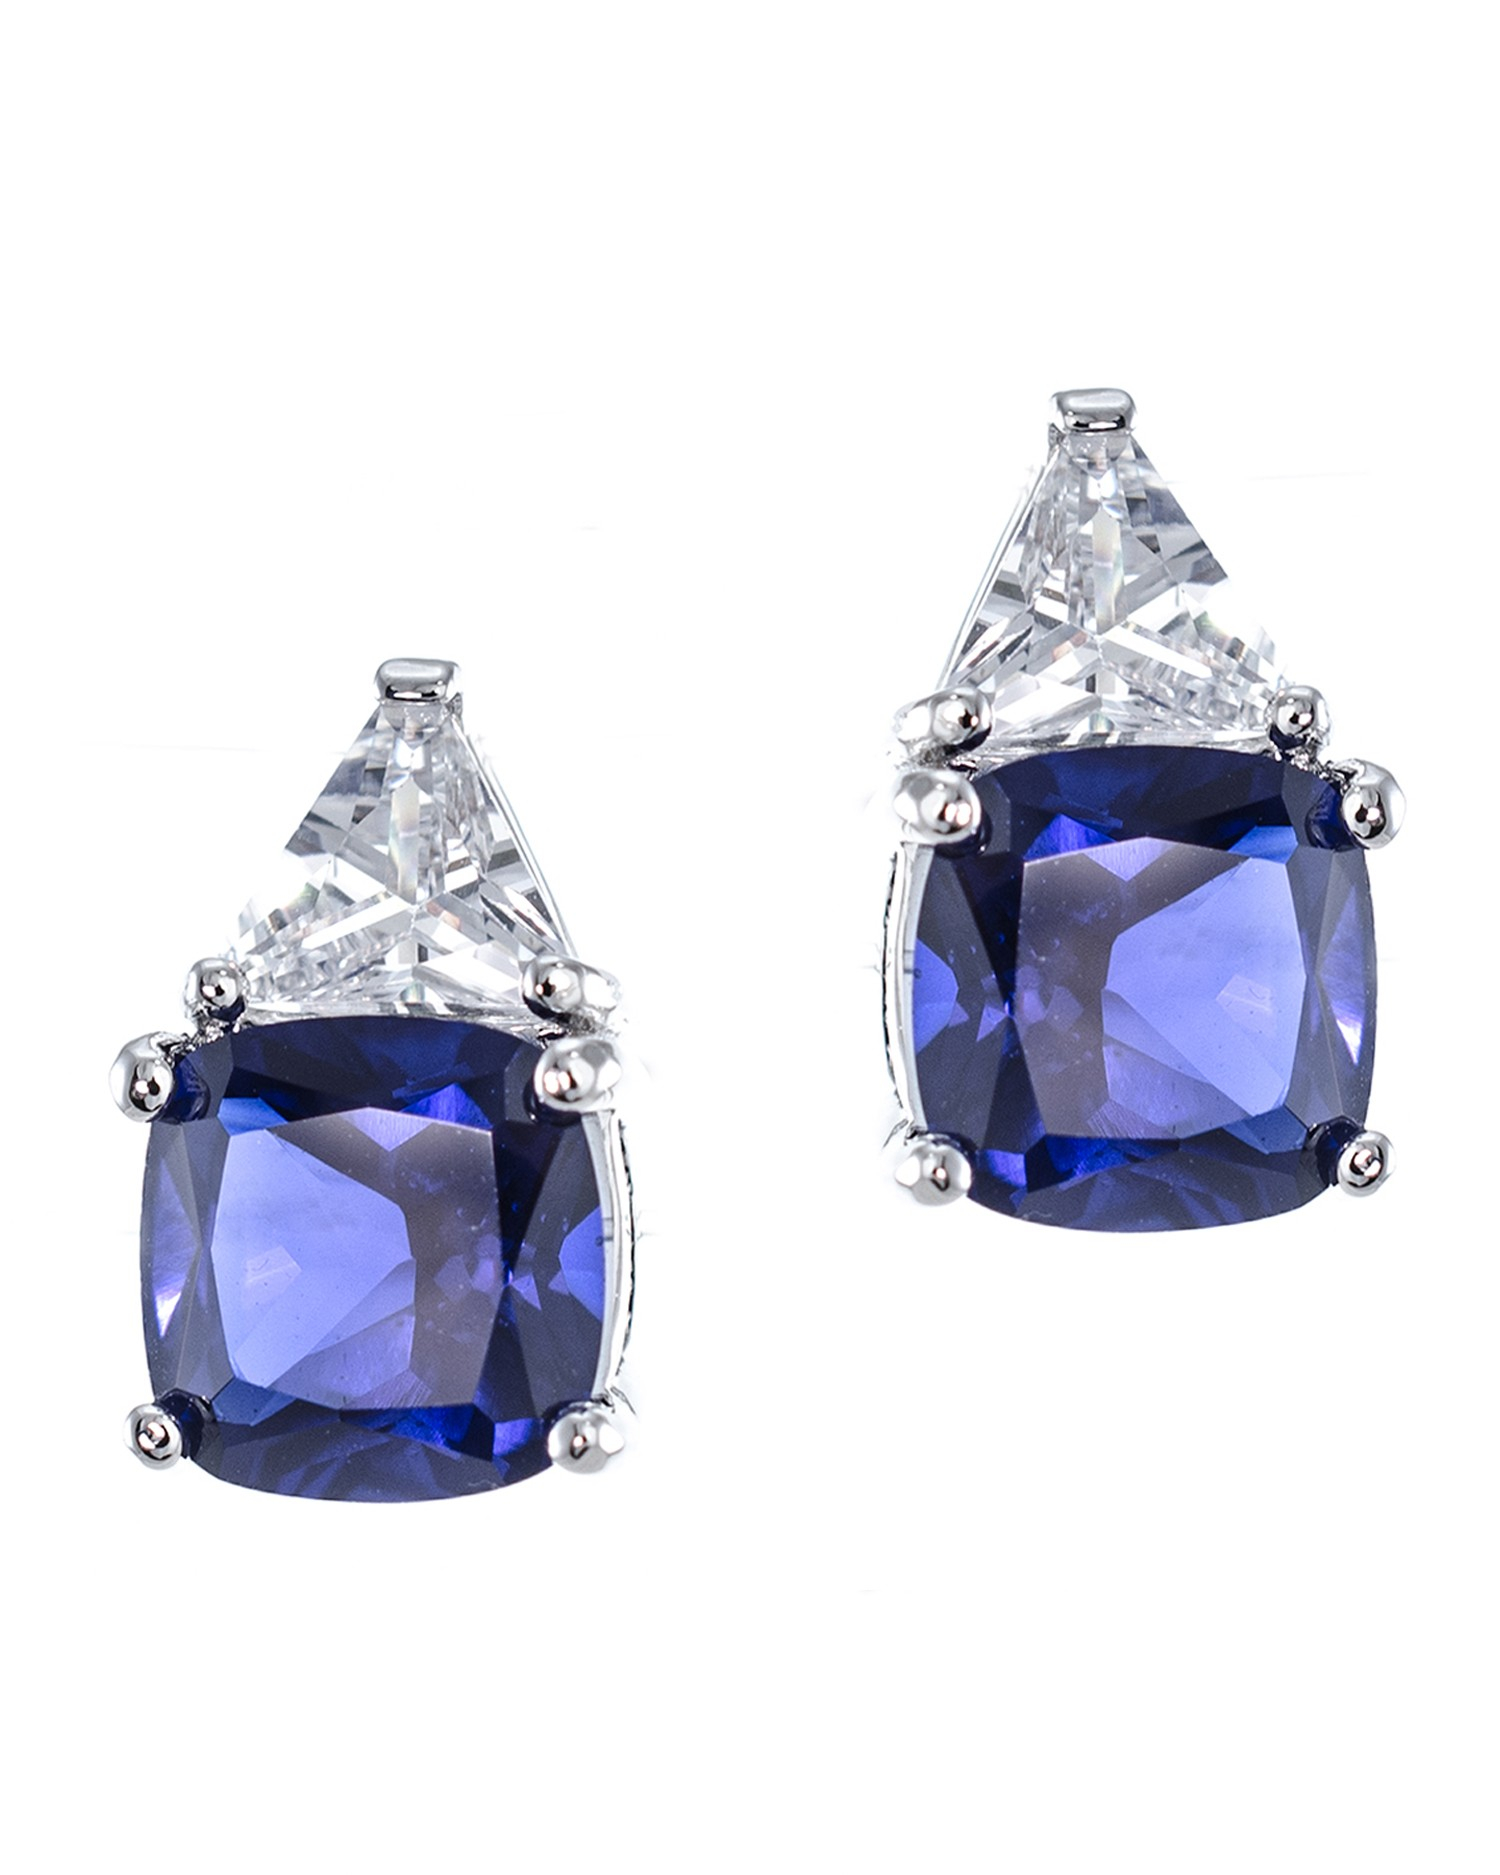 Kenneth jay lane Sapphire Cushion And Trillion Cut Earrings in Blue sapphire